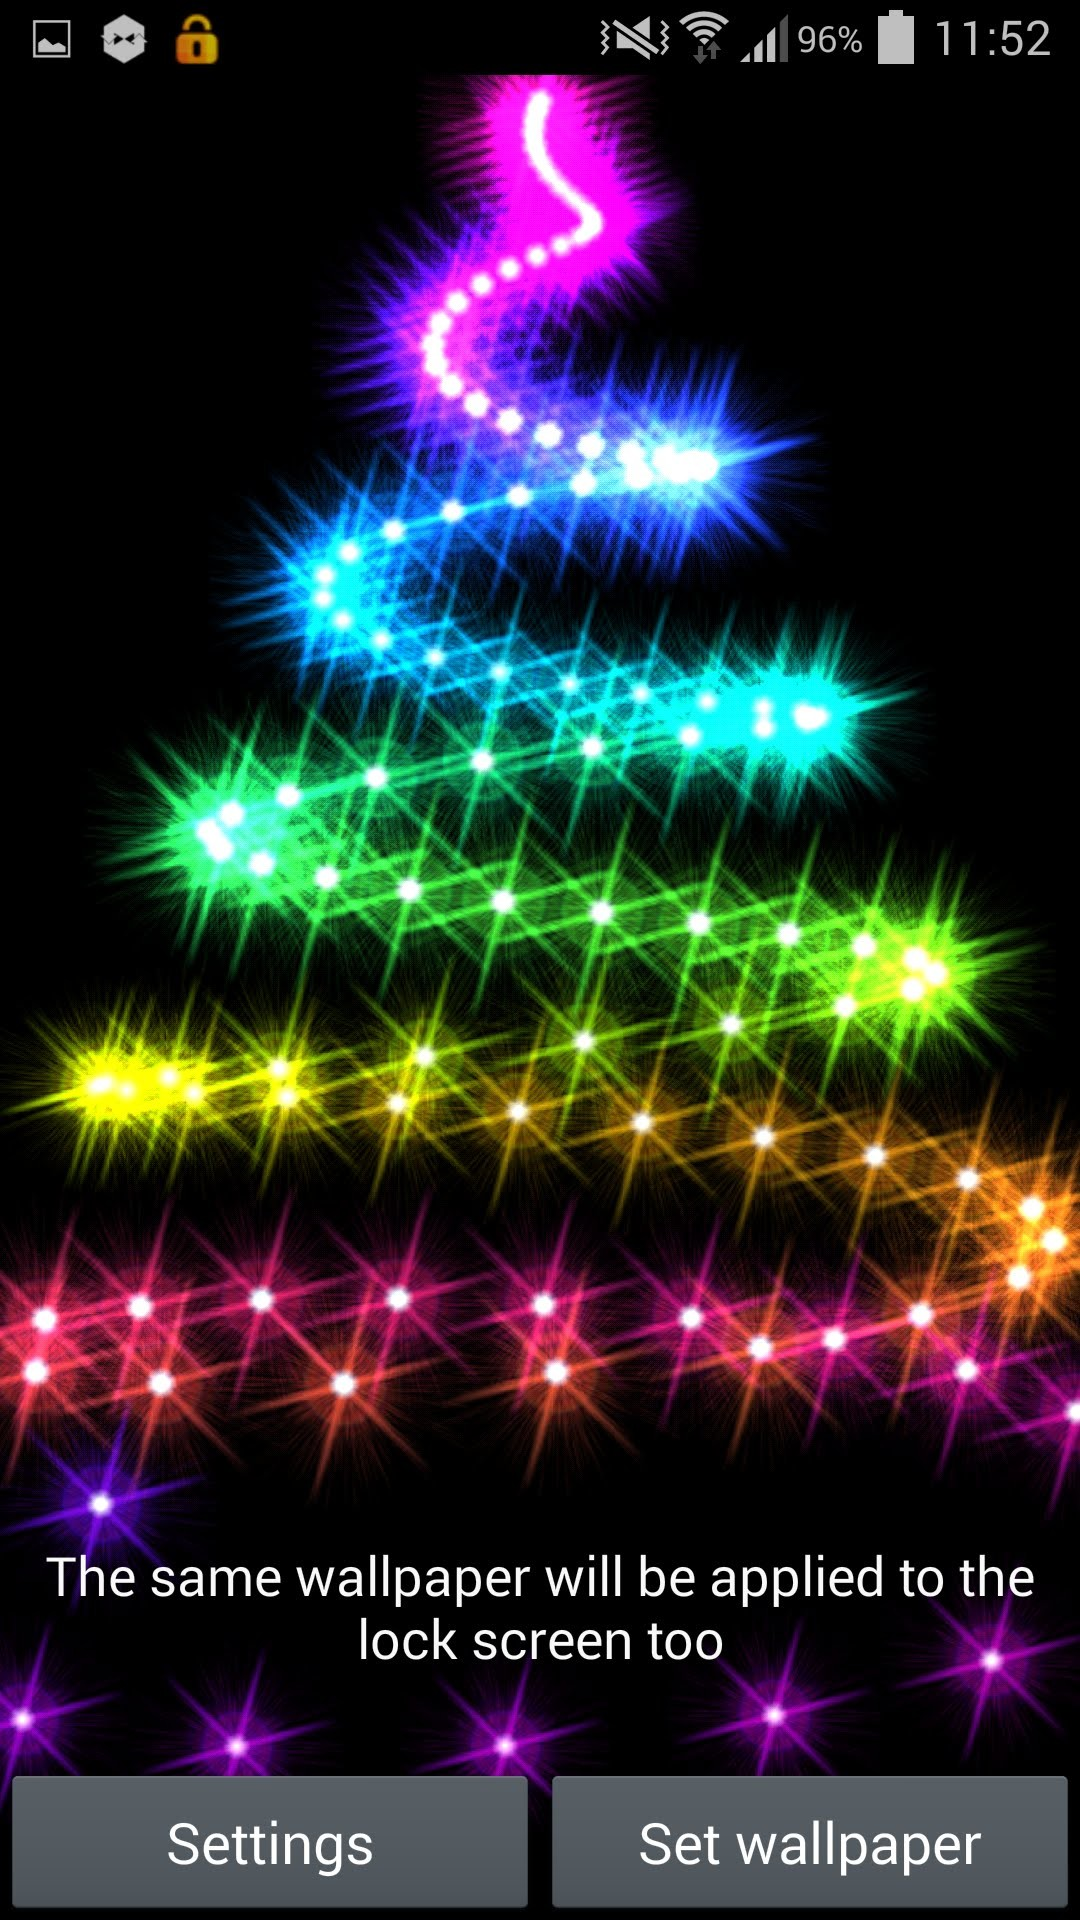 1080x1920 'Christmas Lights 2014' Live Wallpaper for Android - YouTube